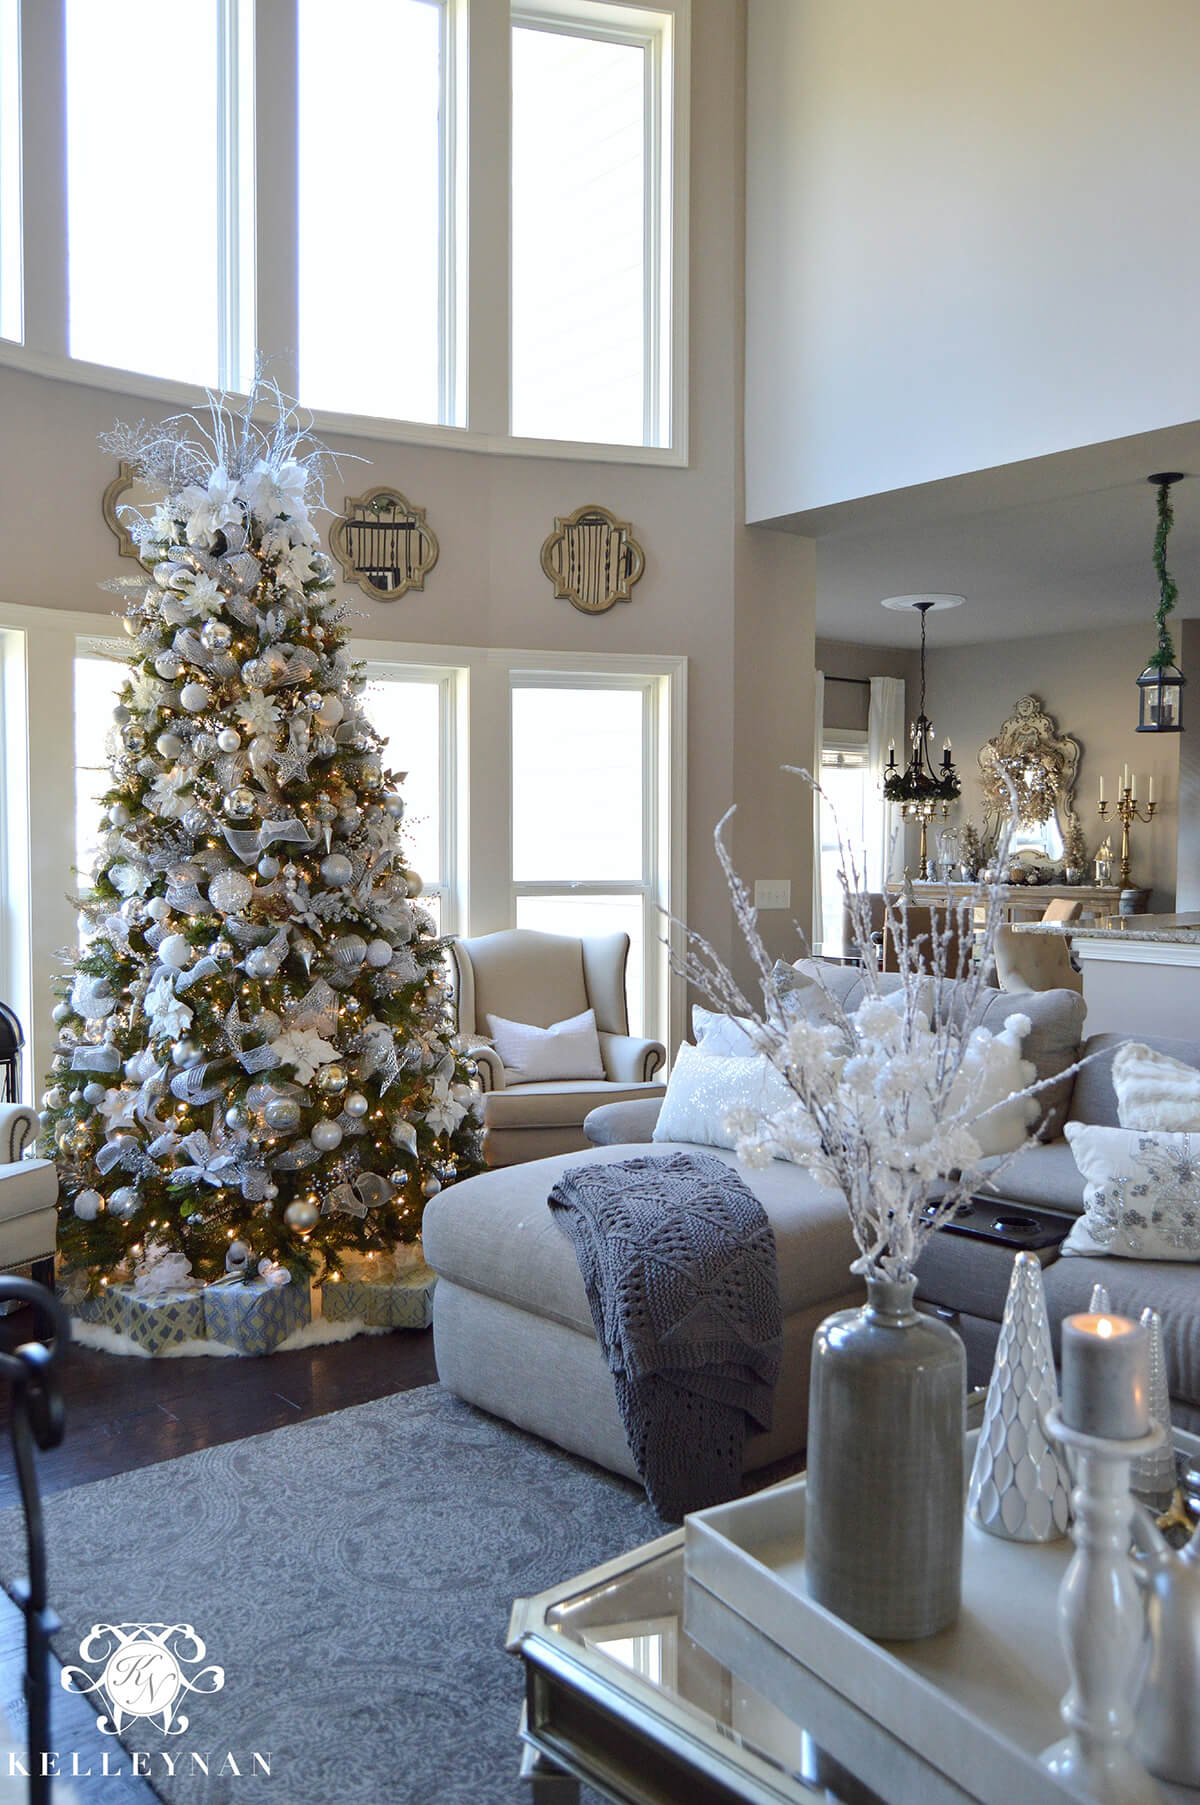 . 32 Best Christmas Living Room Decor Ideas and Designs for 2019